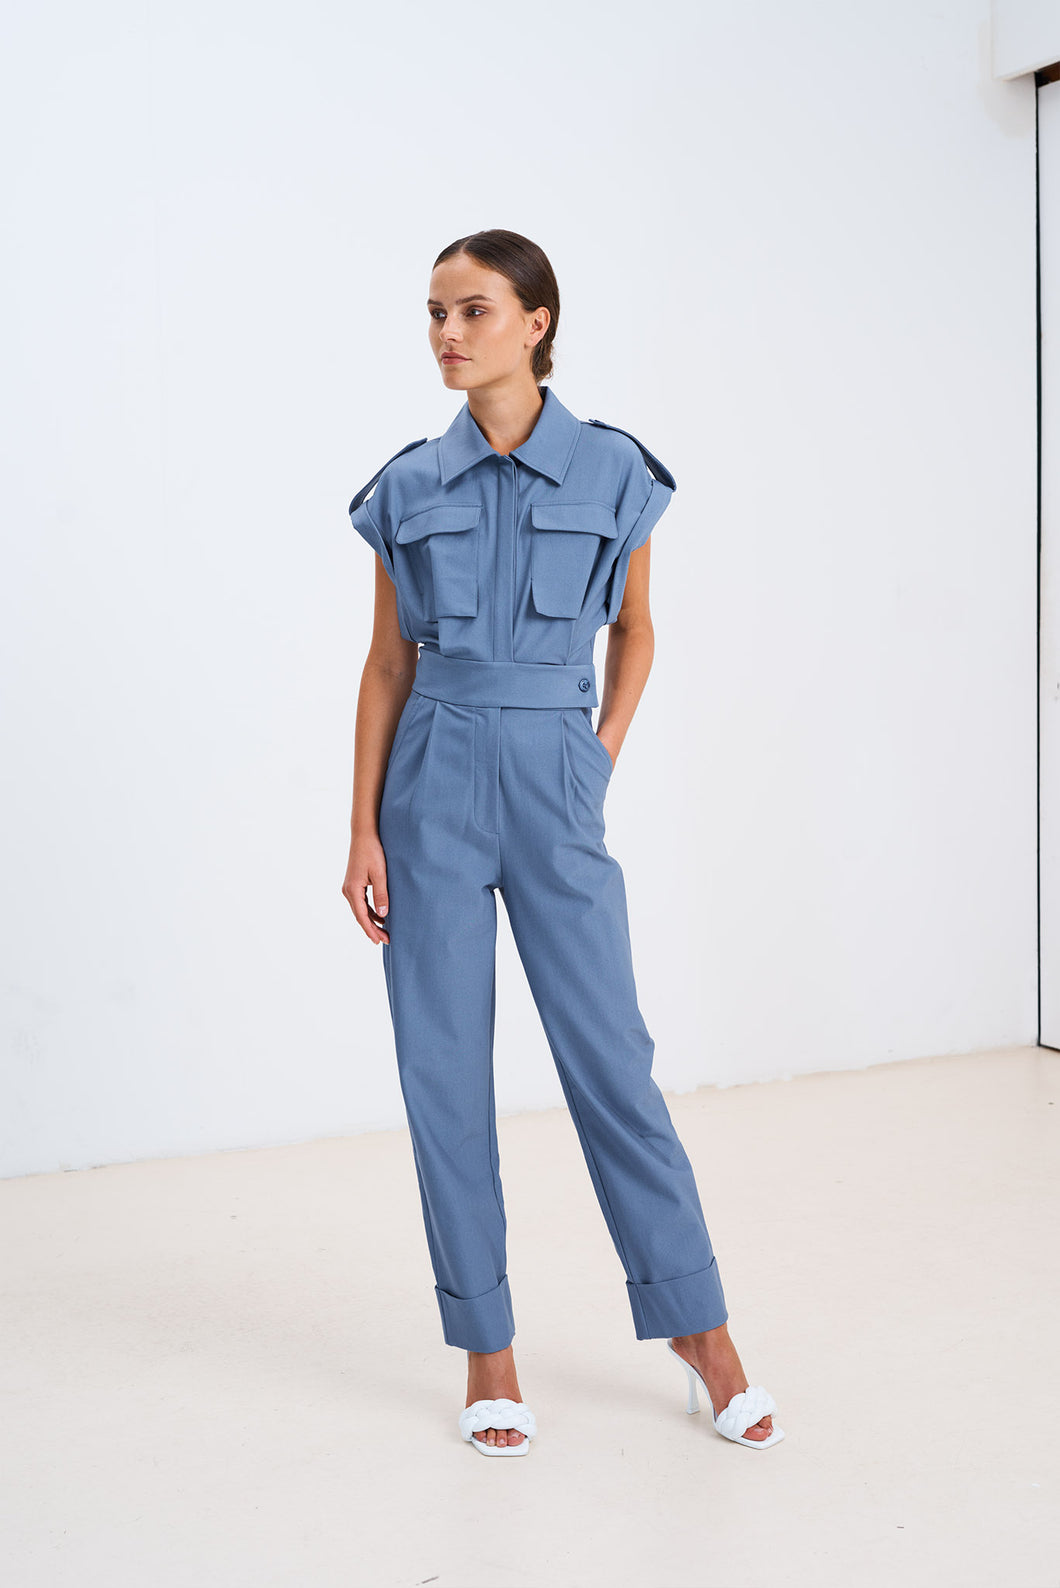 CHPTR-S Forest Jumpsuit Ice Blue